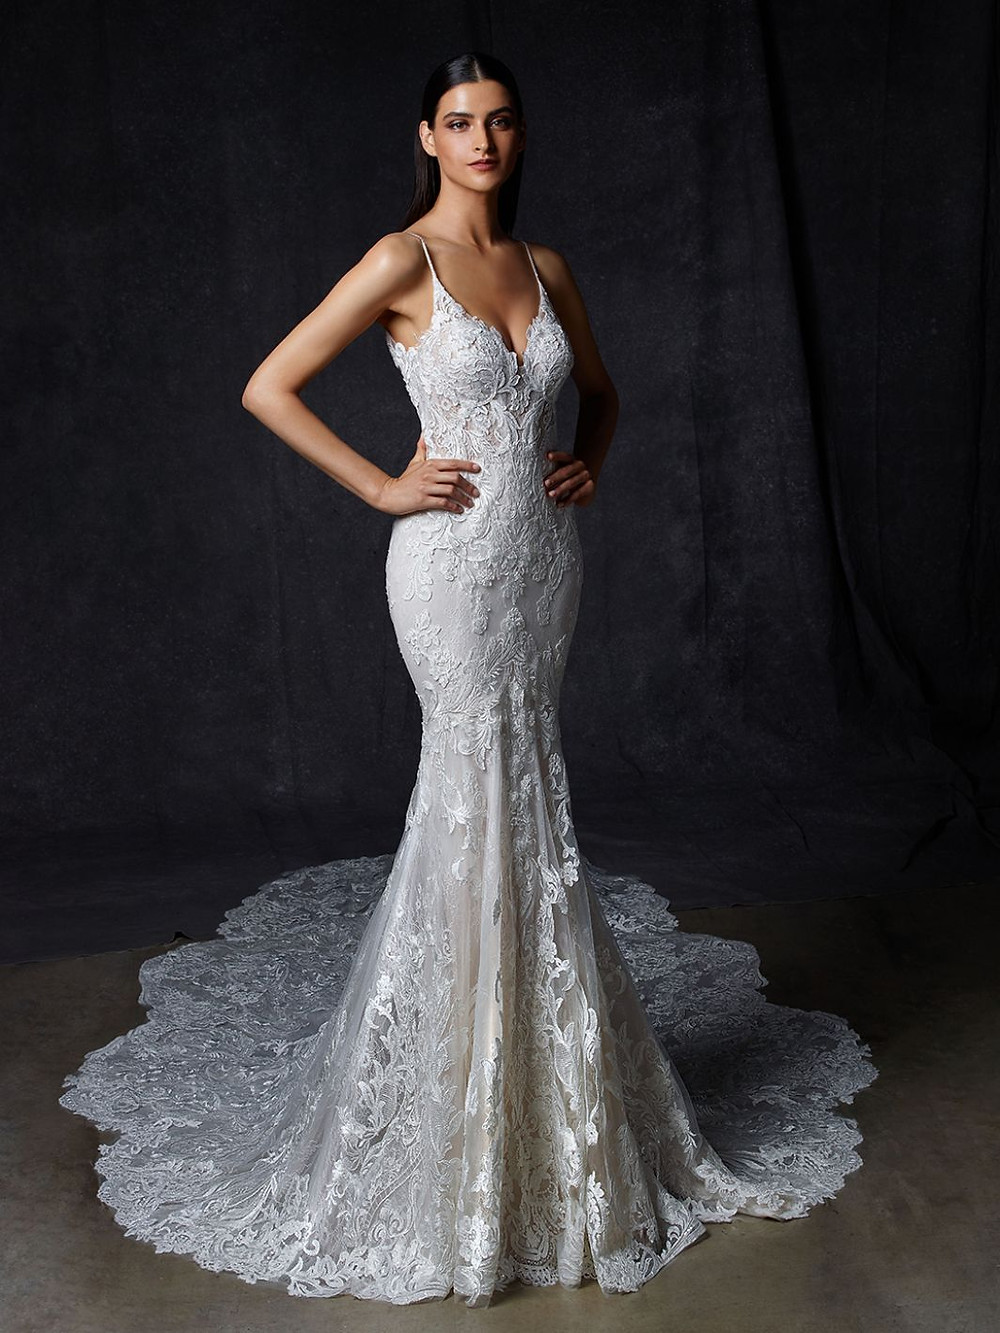 An Enzoani lace mermaid wedding dress with thin straps and a long train